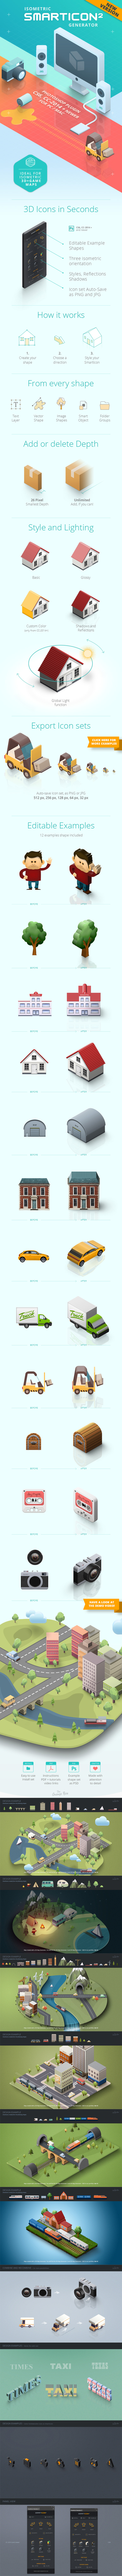 SmartIcon Generator 2 - Isometric 3D Icons by GraphicAssets on